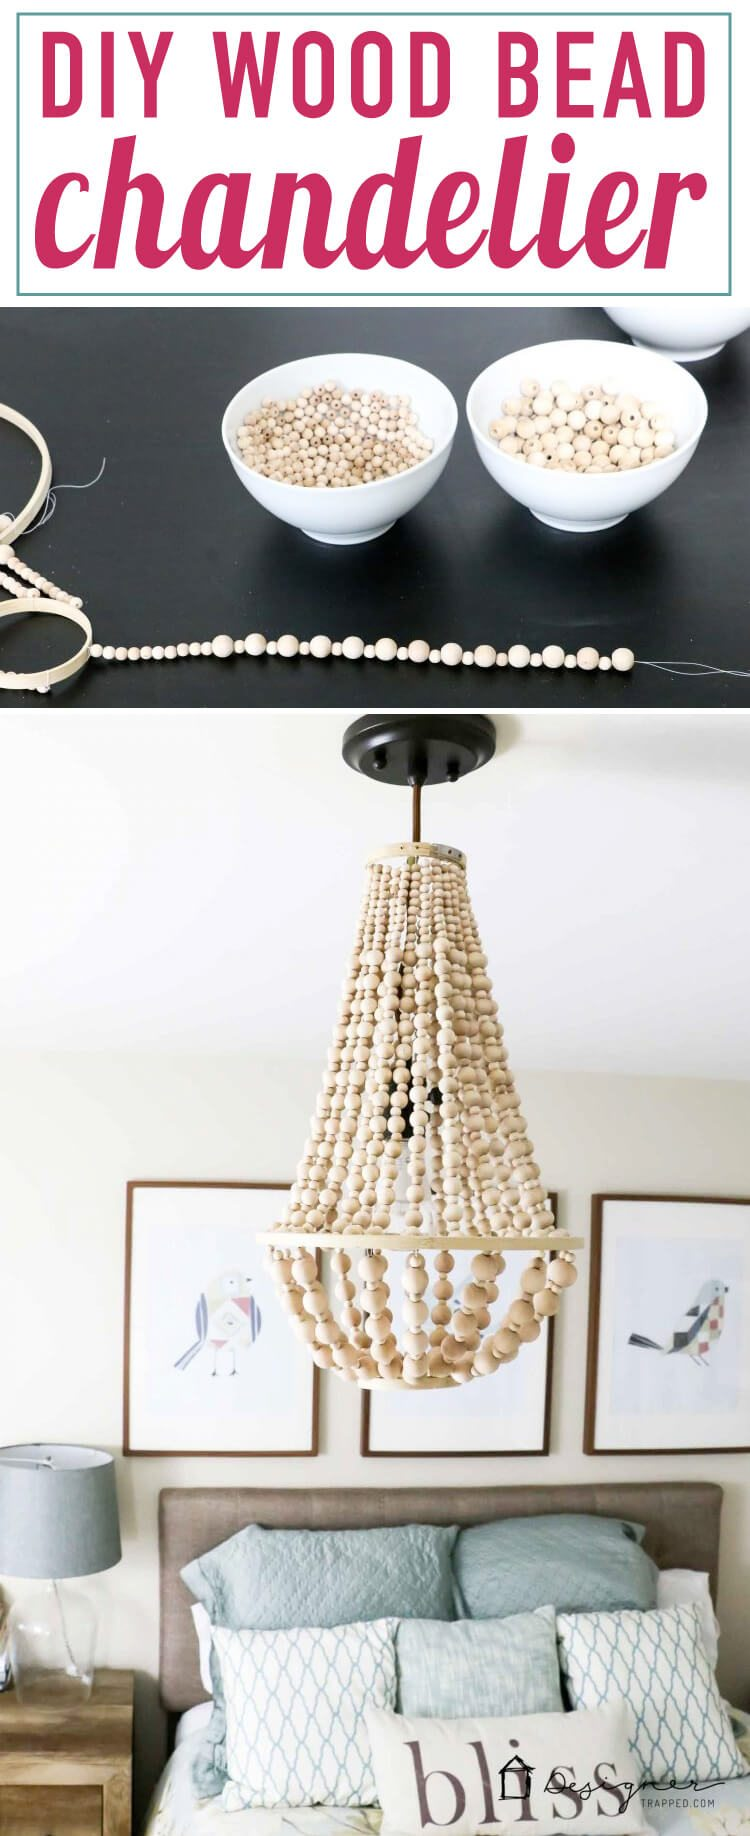 OMG, I Love This DIY Chandelier Made From Wood Beads. It Looks Like It